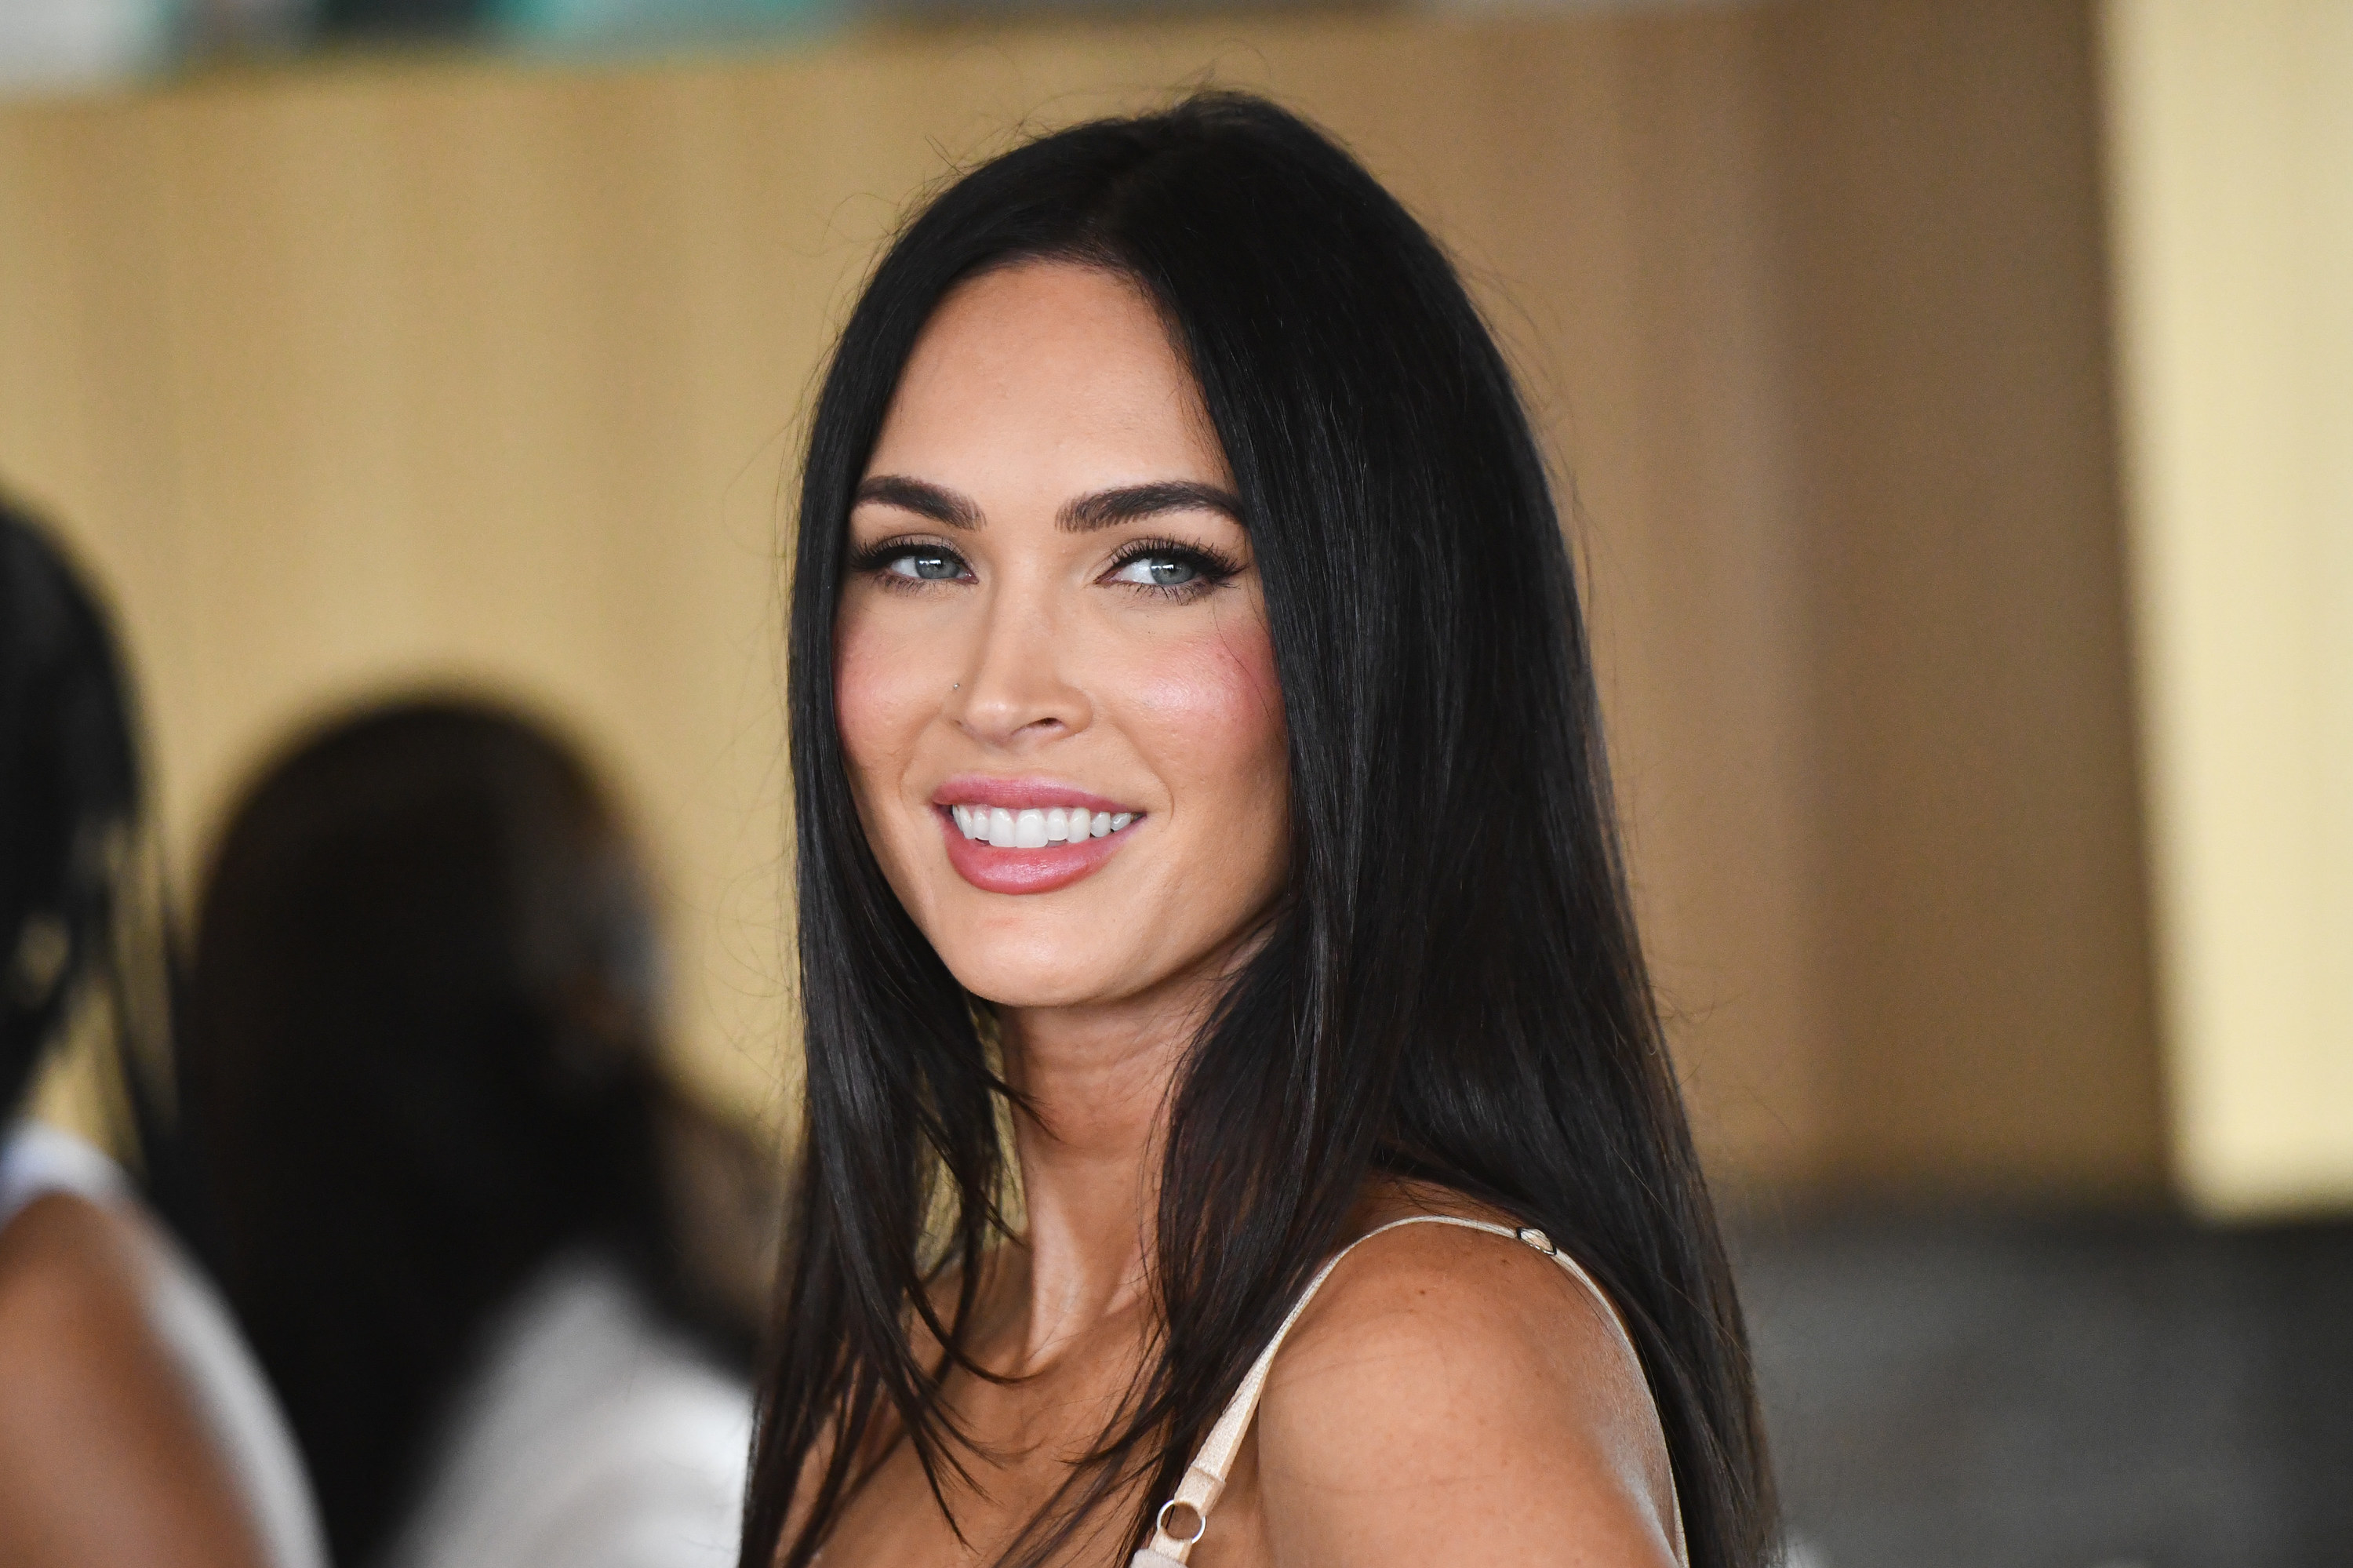 Megan Fox is photographed smiling